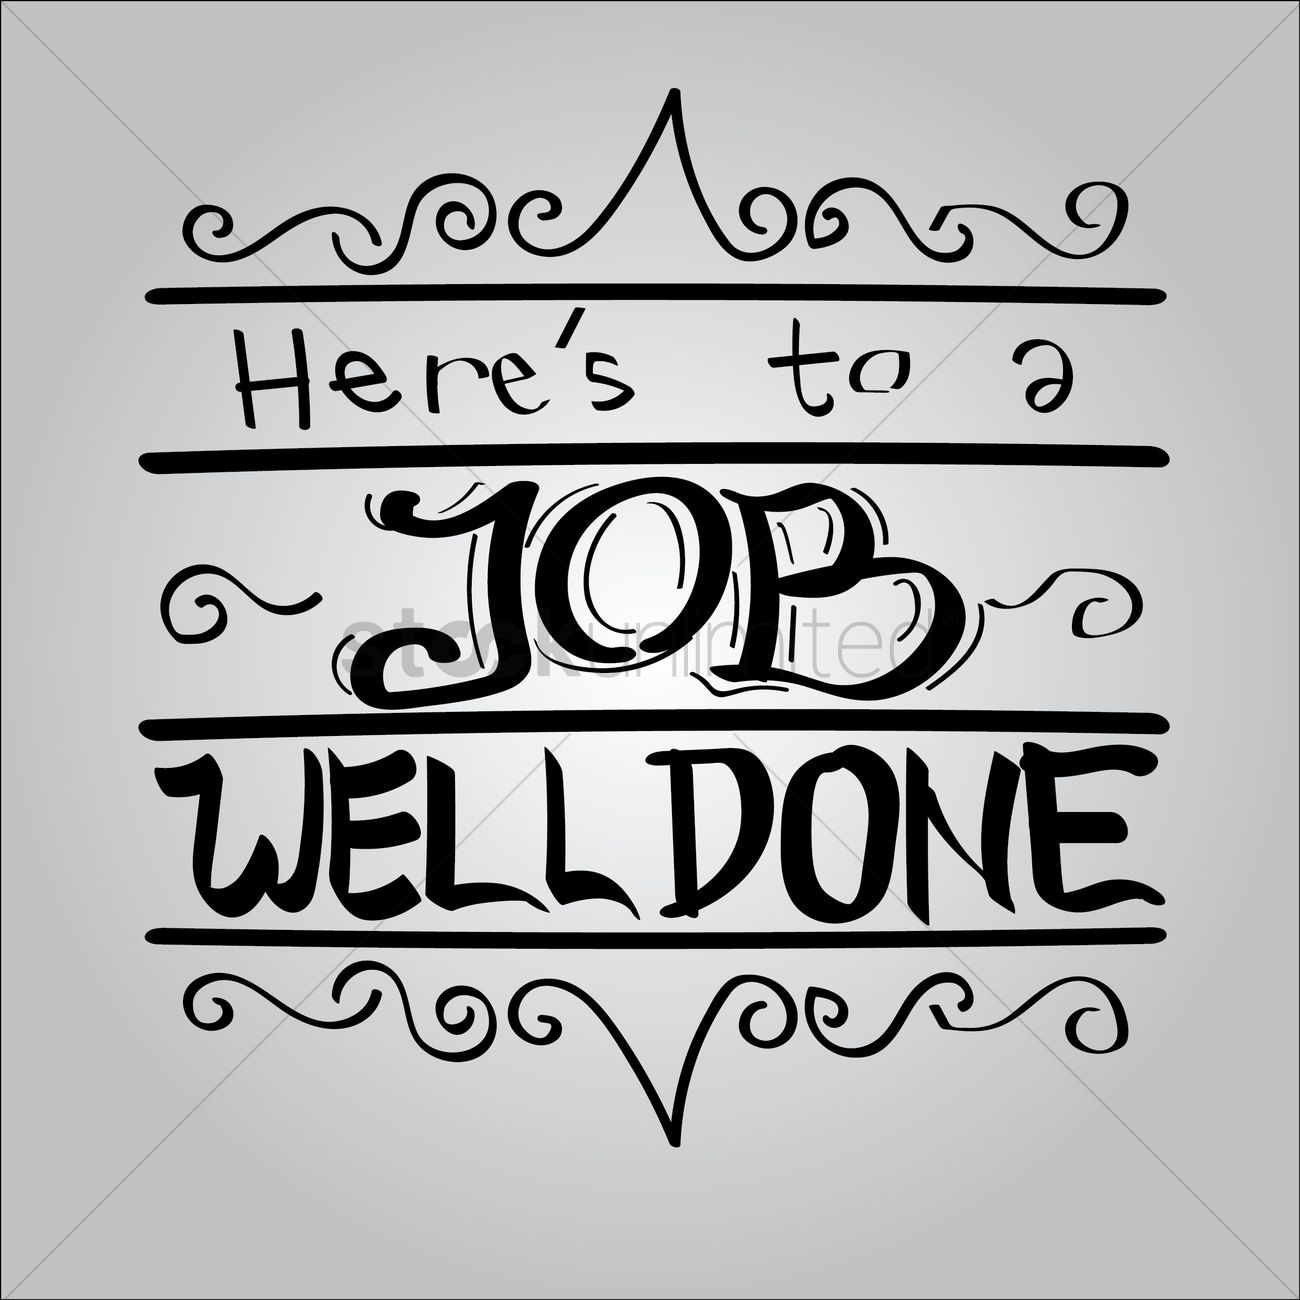 Here's to a job well done Vector Image - 1797456 | StockUnlimited